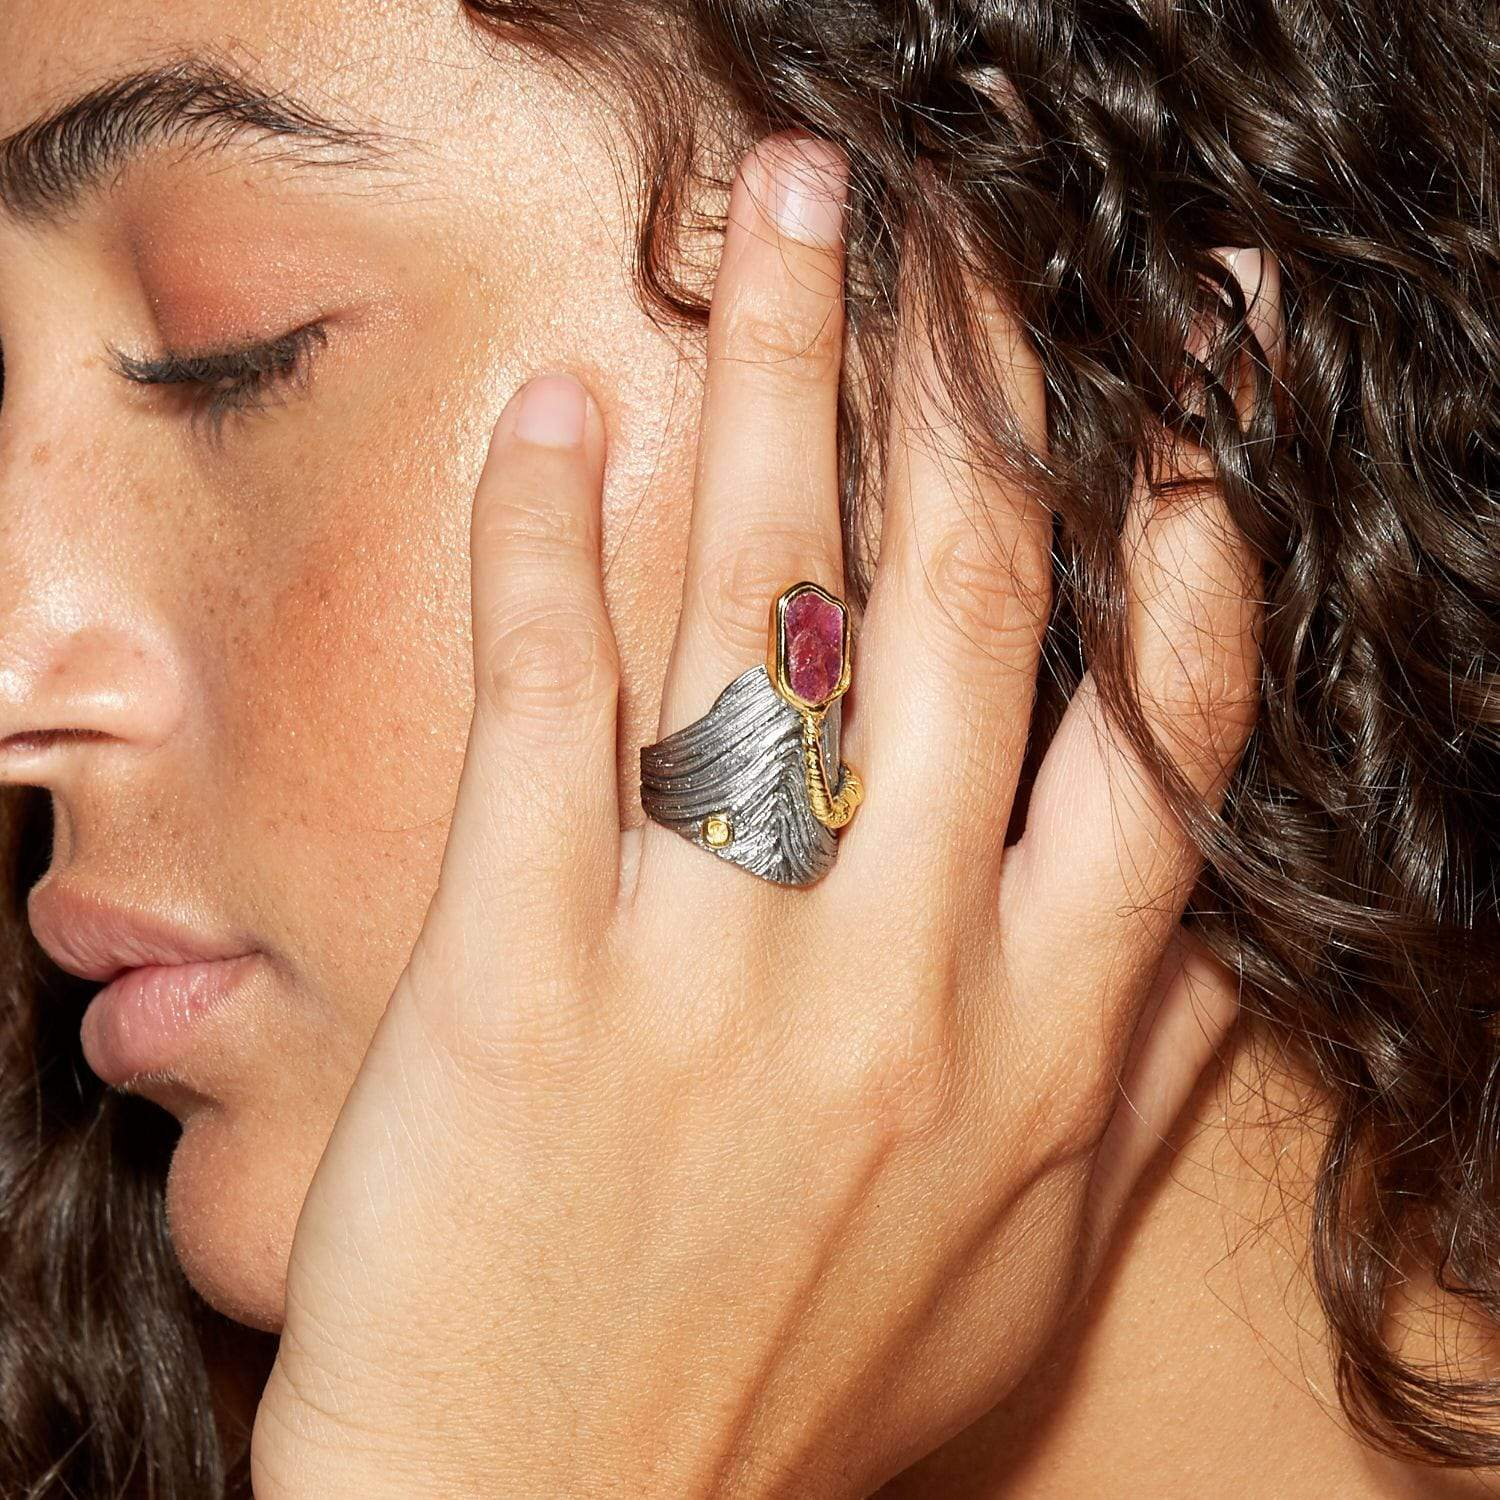 Monifa Ring, Gold, gray, Handmade, Rhodium, Ruby, spo-disabled, StoneColor:PinkRuby, Style:Everyday, type:StoneCandyOut, Type:StoneCandyWired Ring